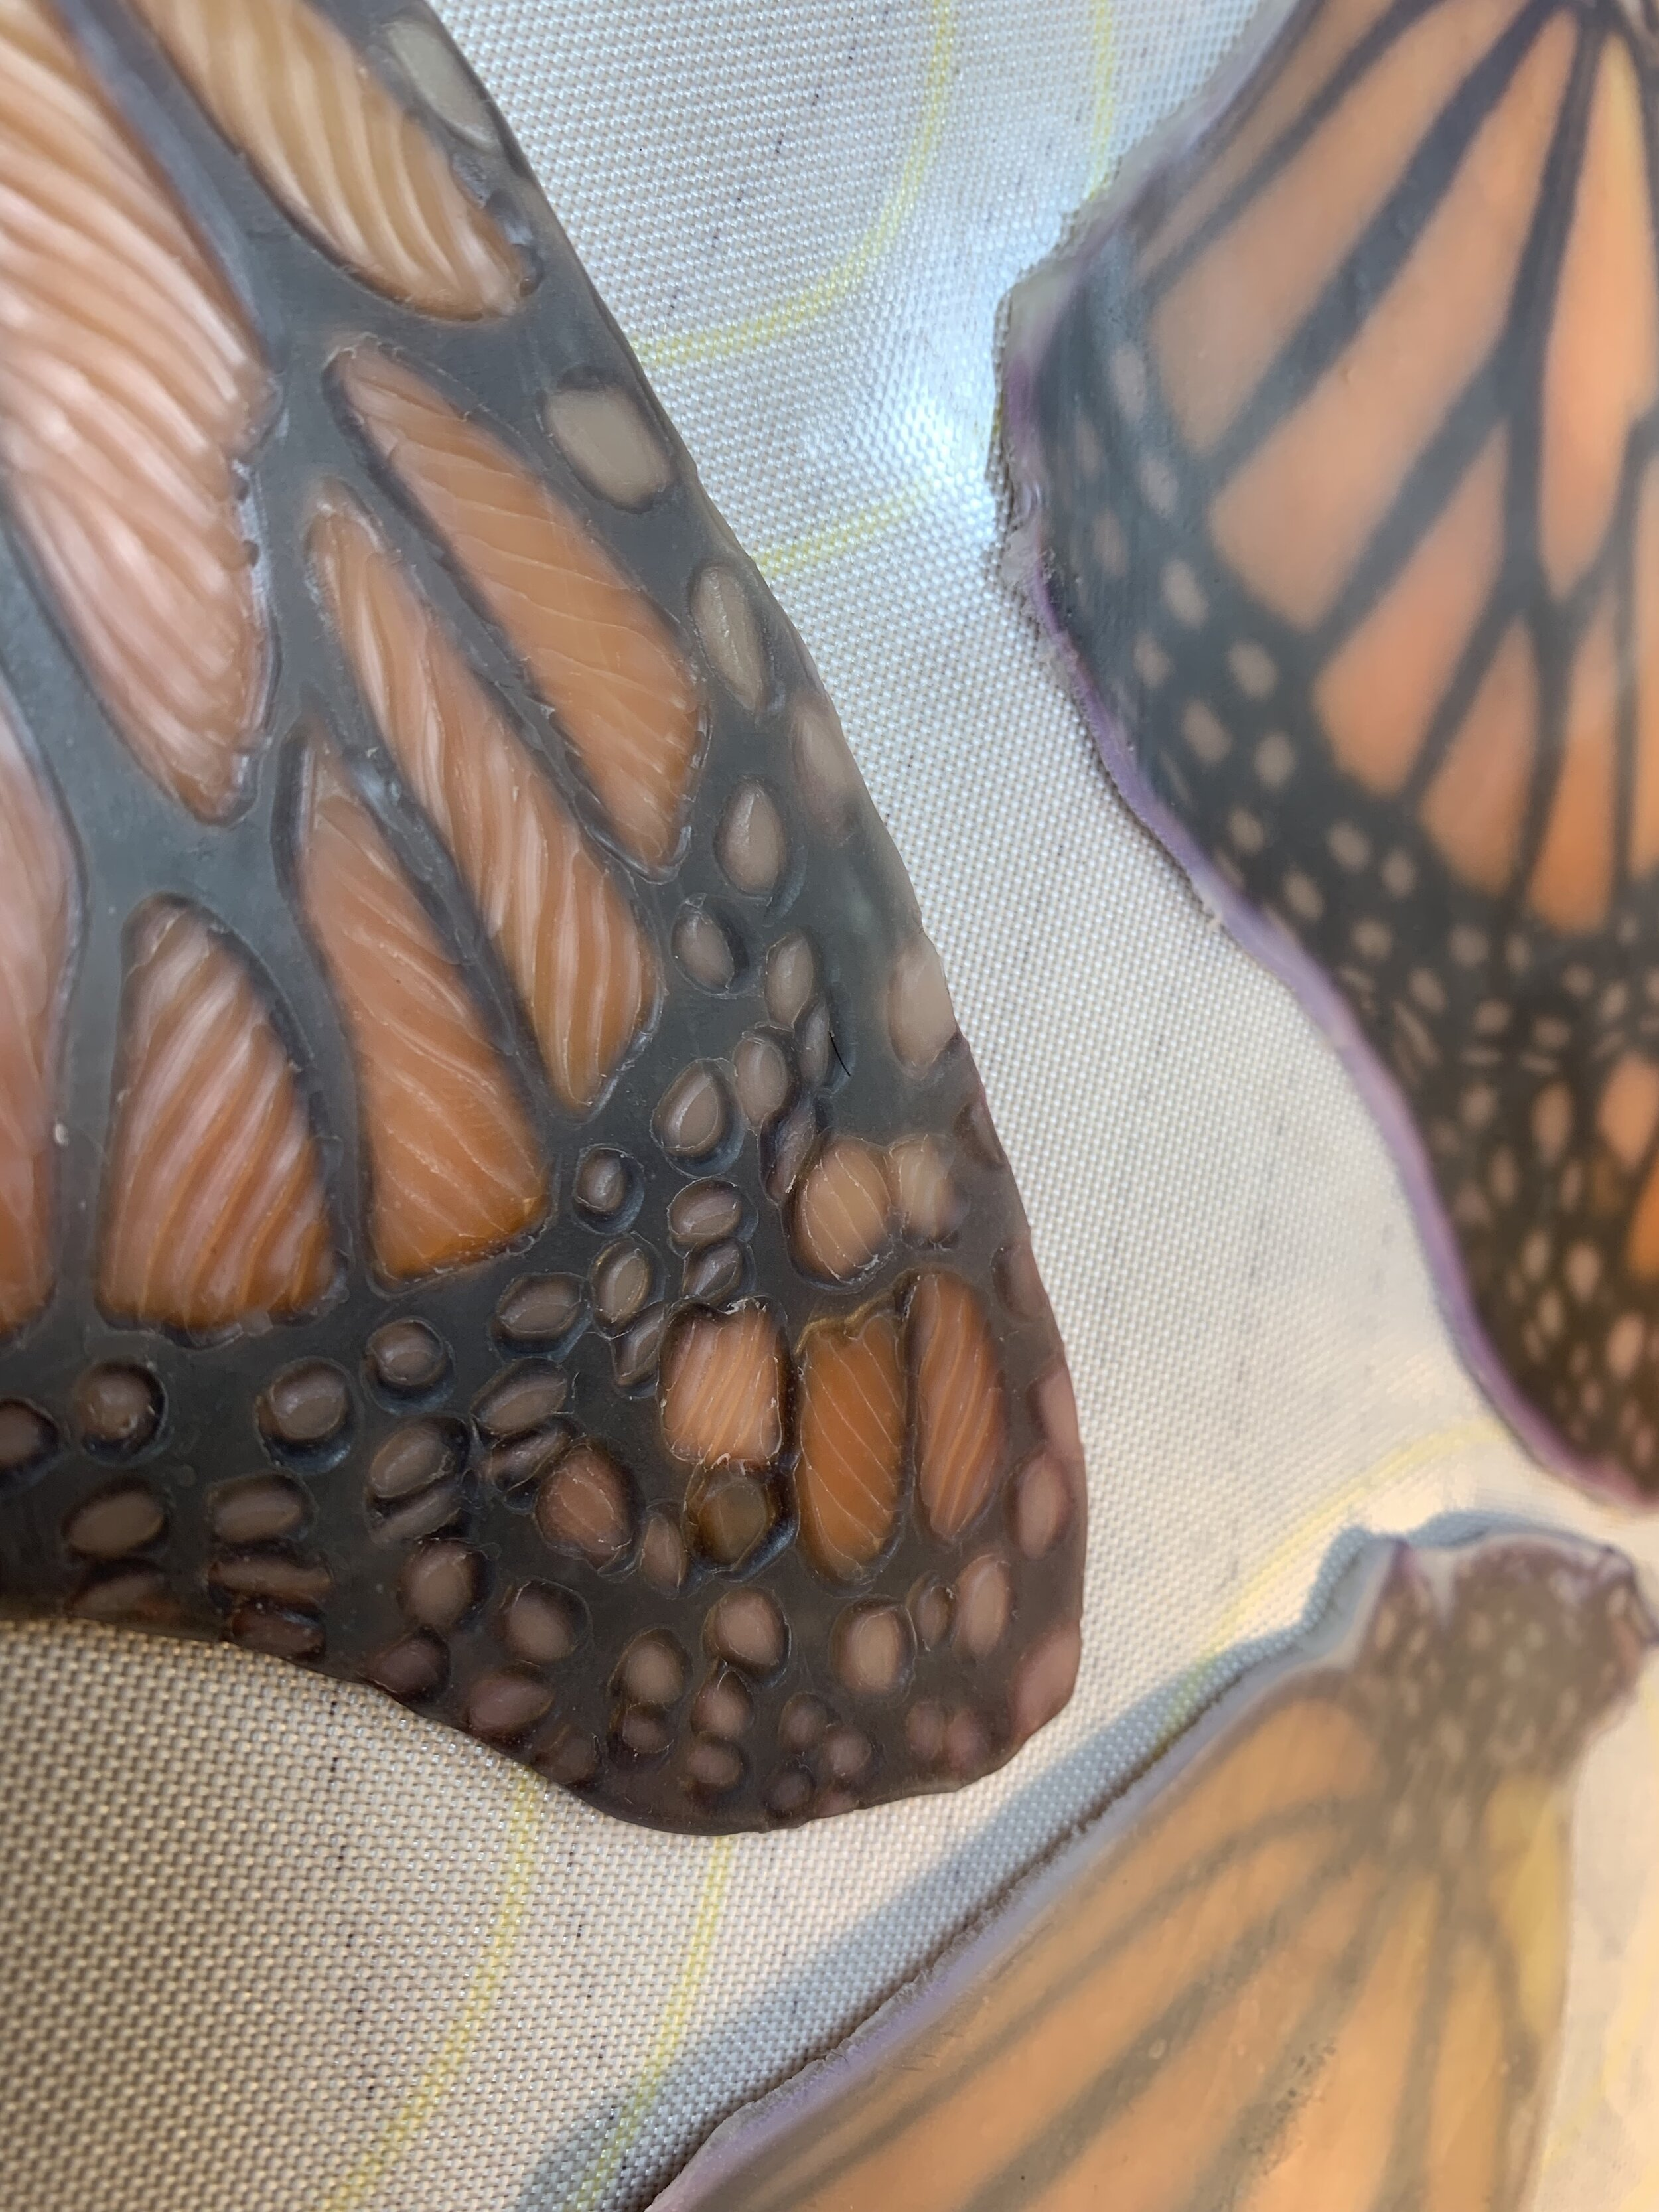 Waxing up macro photos of the monarchs we raised led me into stillness where I could reflect on the complete dependency of these creatures and the ecology in which they live.